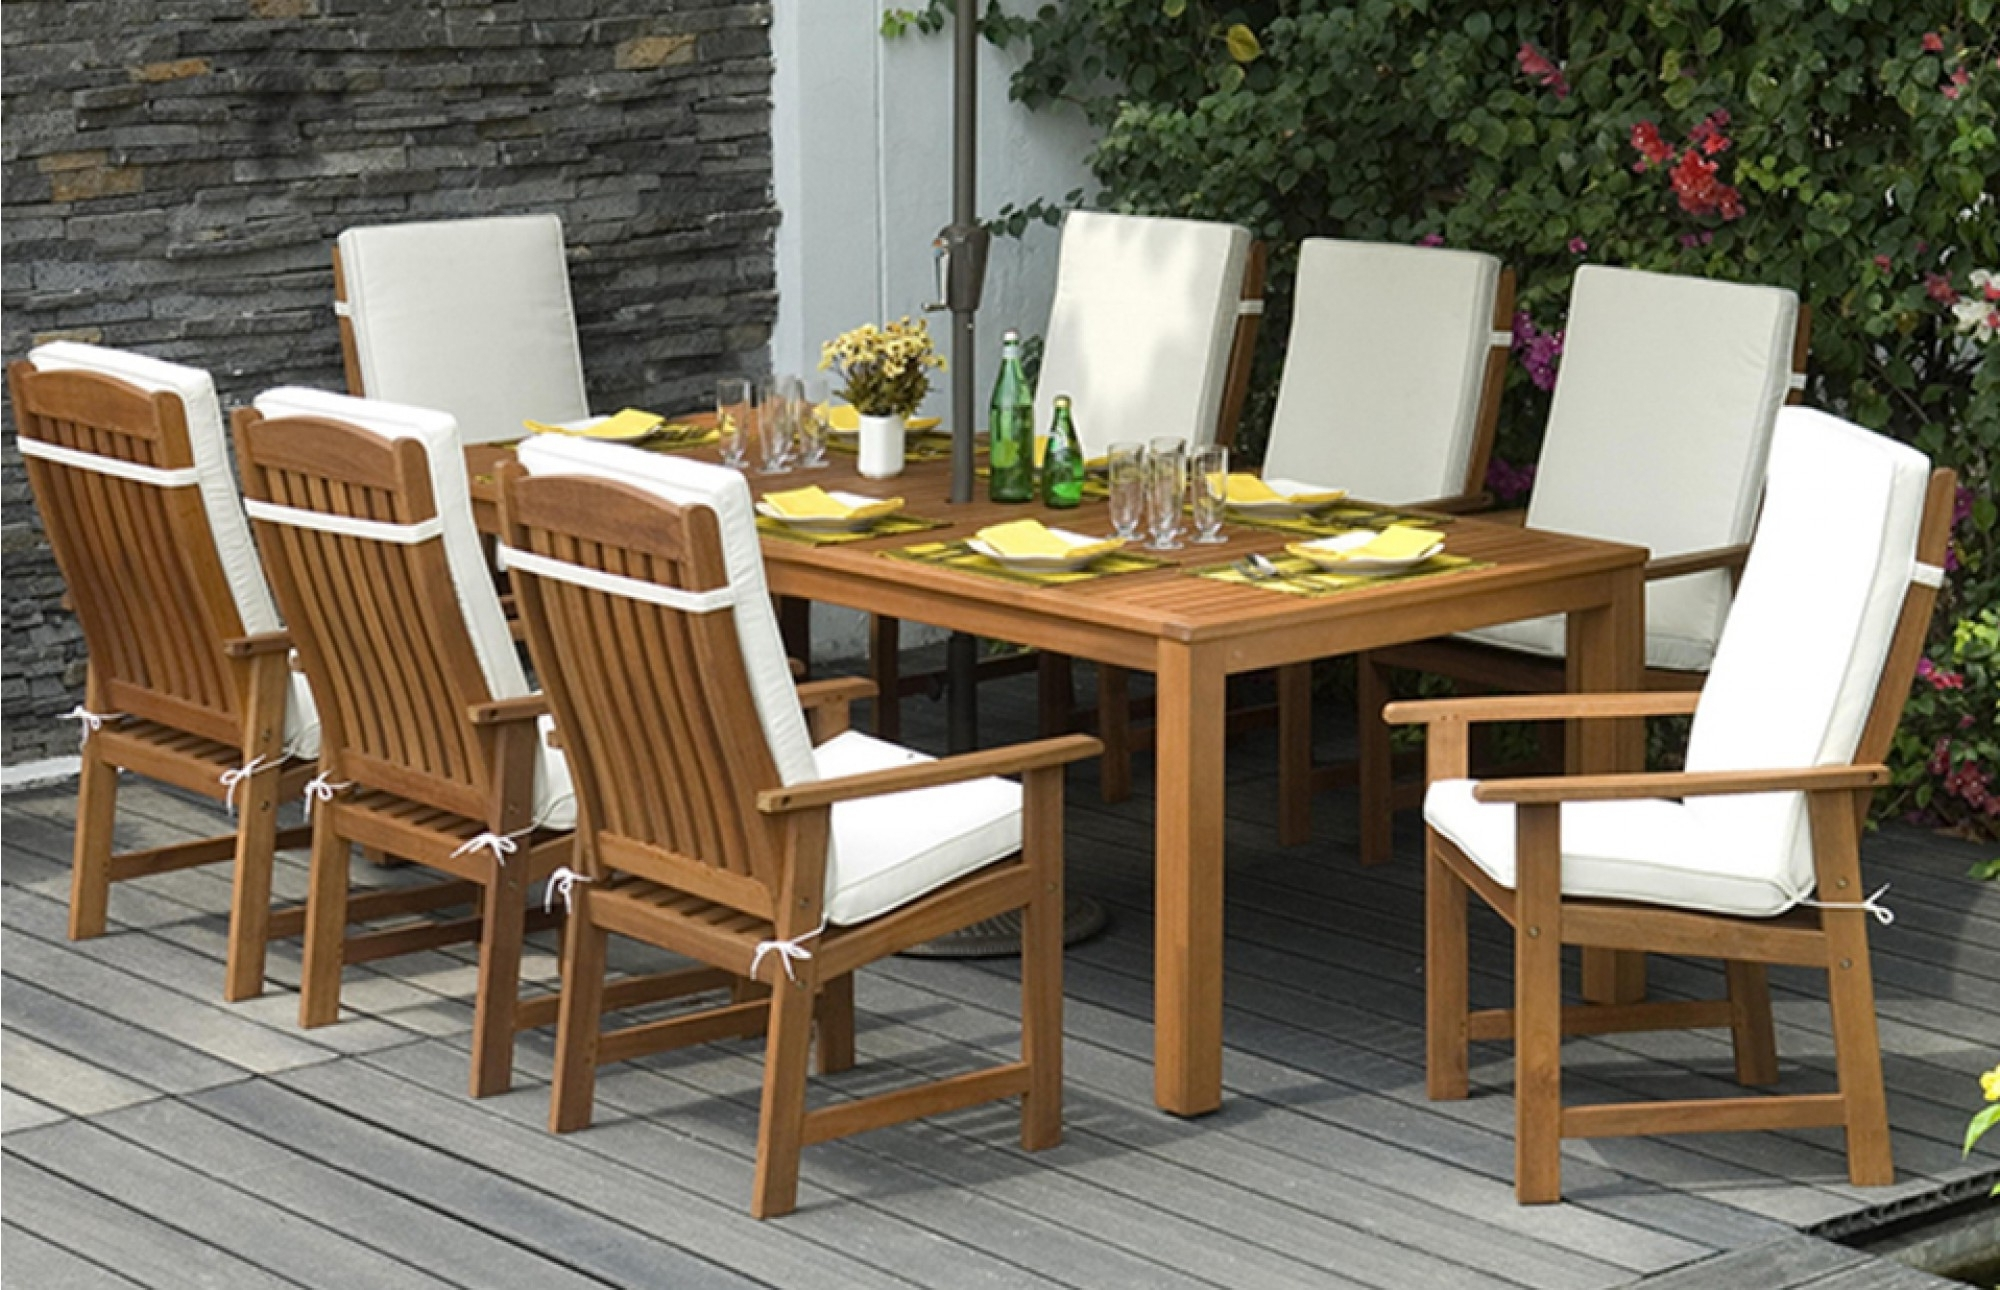 Dining Table Sets 8 Seater • Table Setting Ideas In Most Popular 8 Seater Dining Tables And Chairs (View 19 of 25)